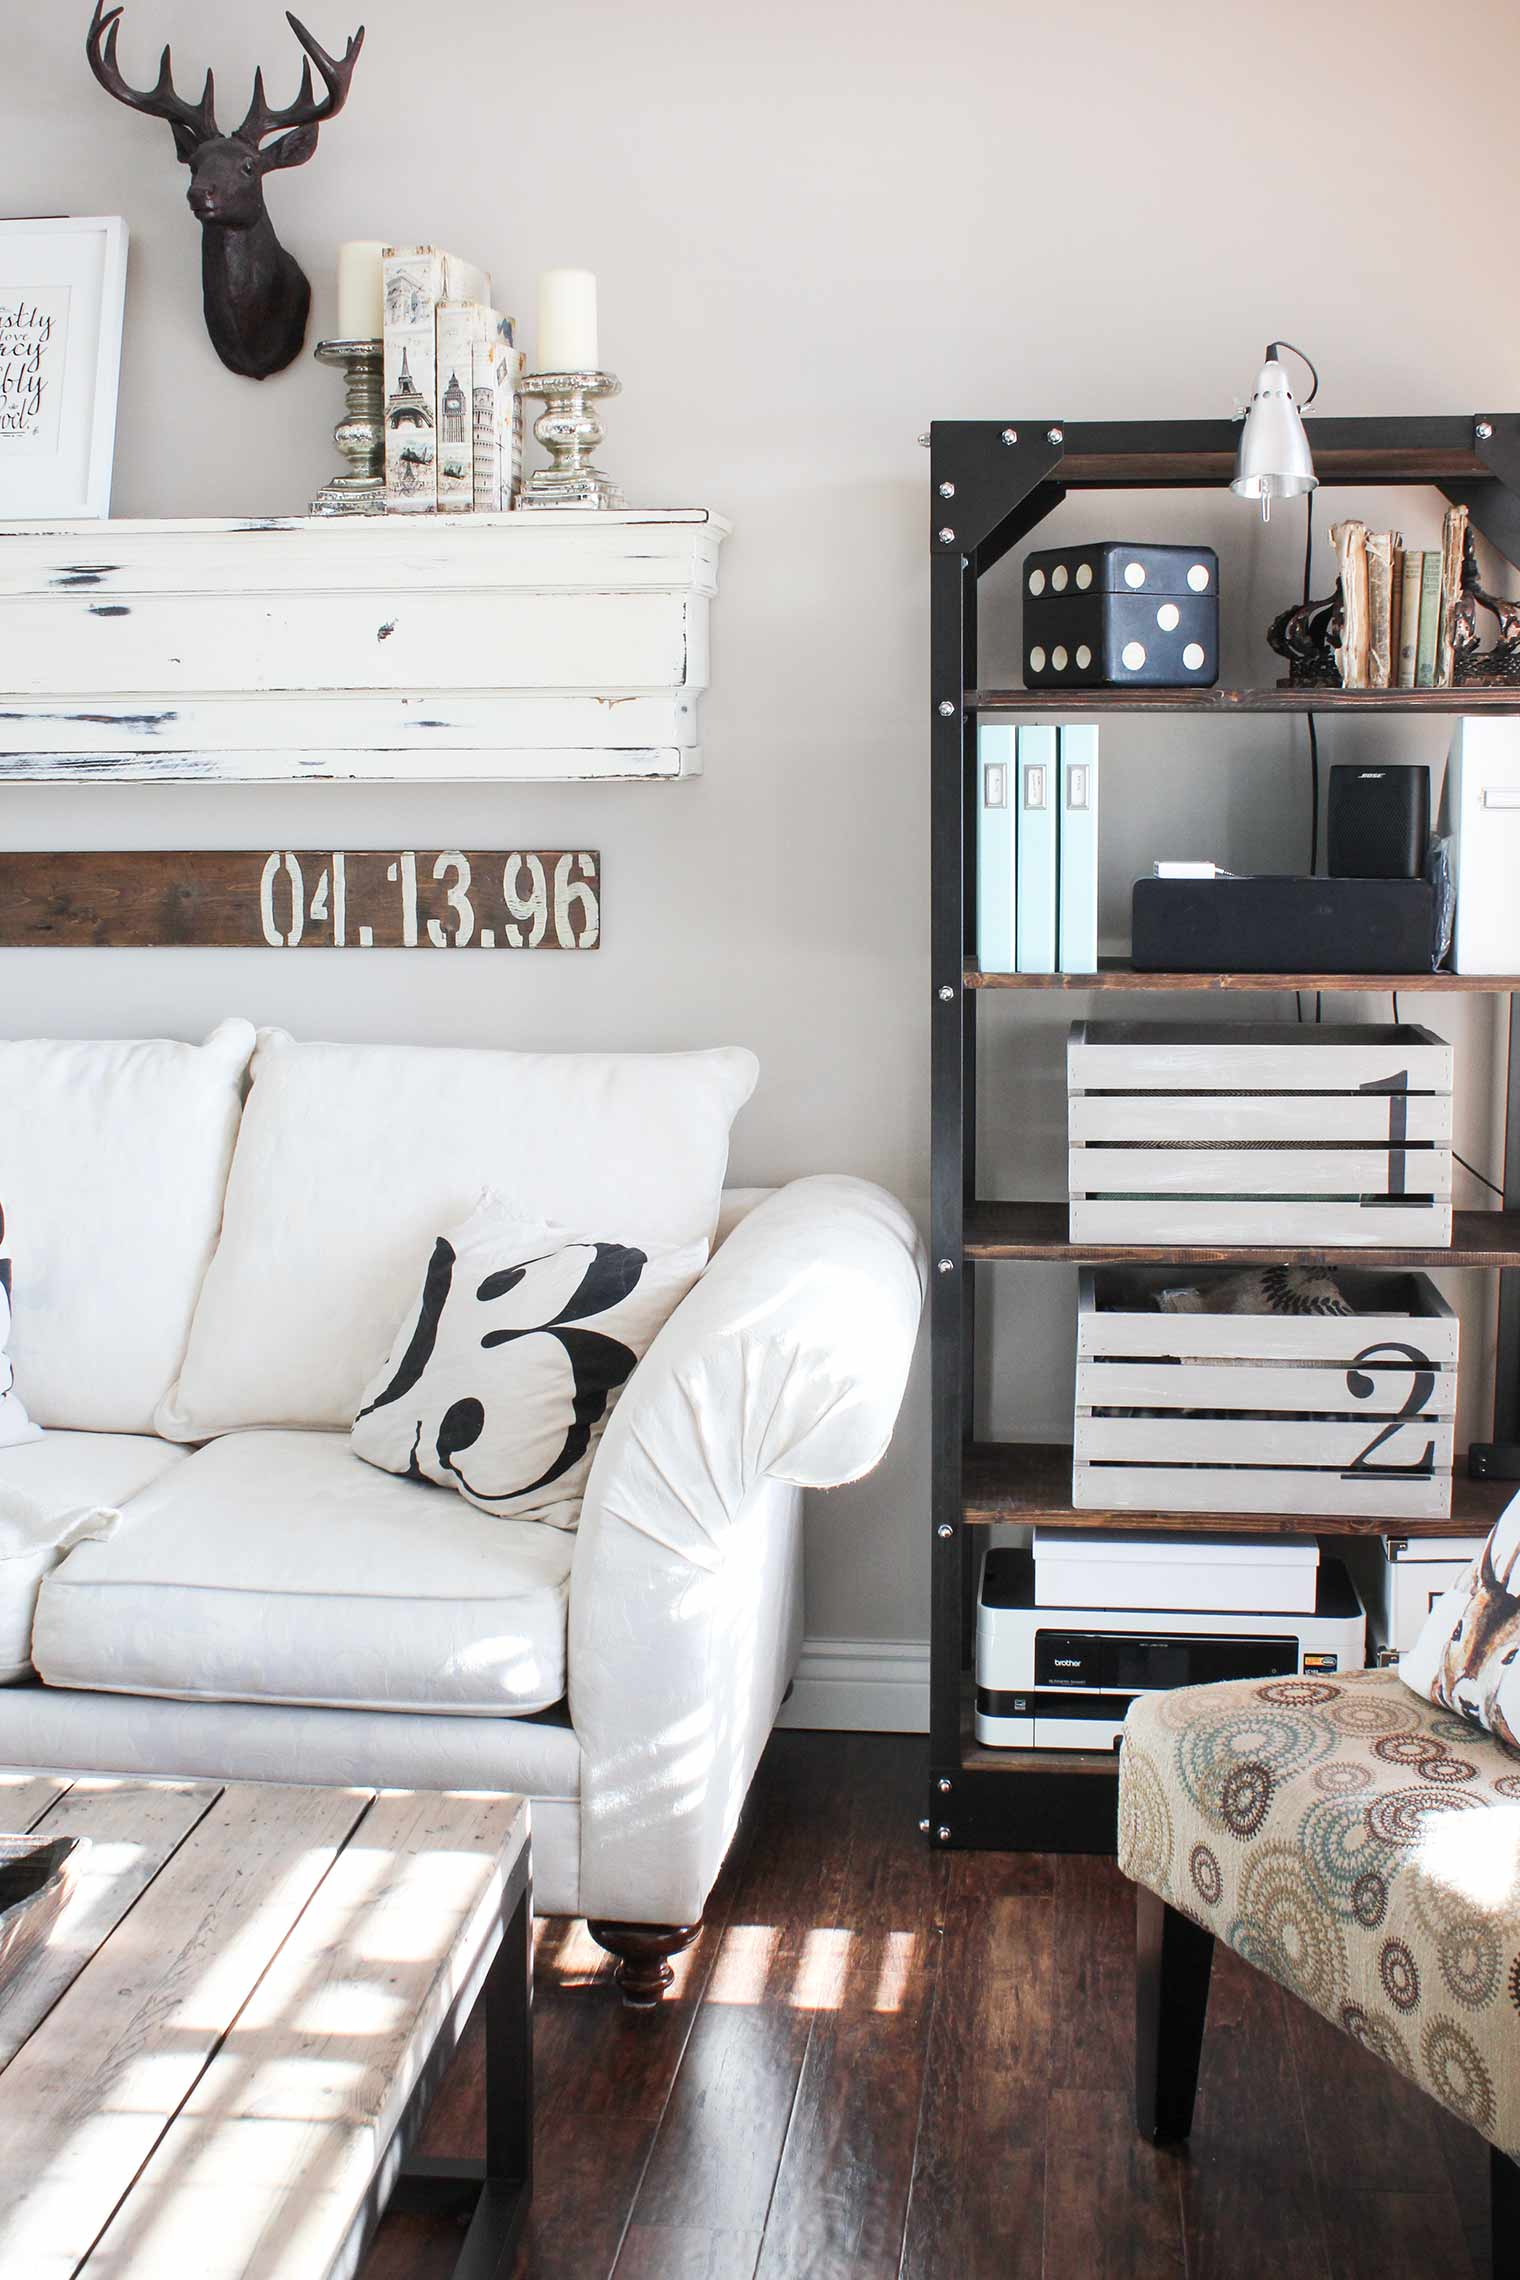 crates on shelves, white sofa, black and white 23 pillow, special date stenciled sign